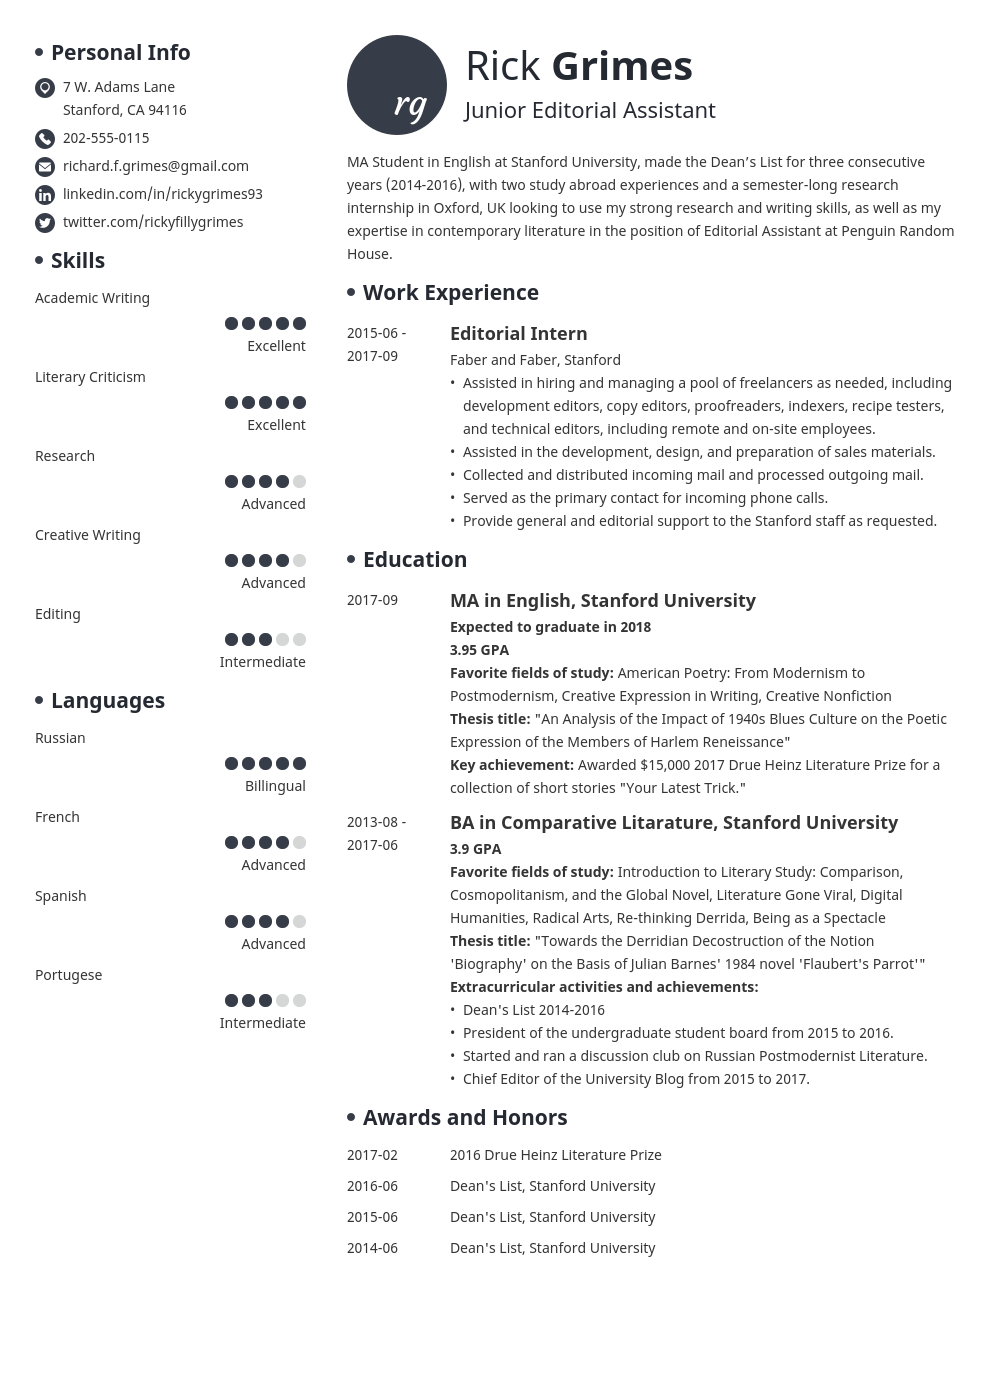 Cv Template For Graduates from cdn-images.zety.com